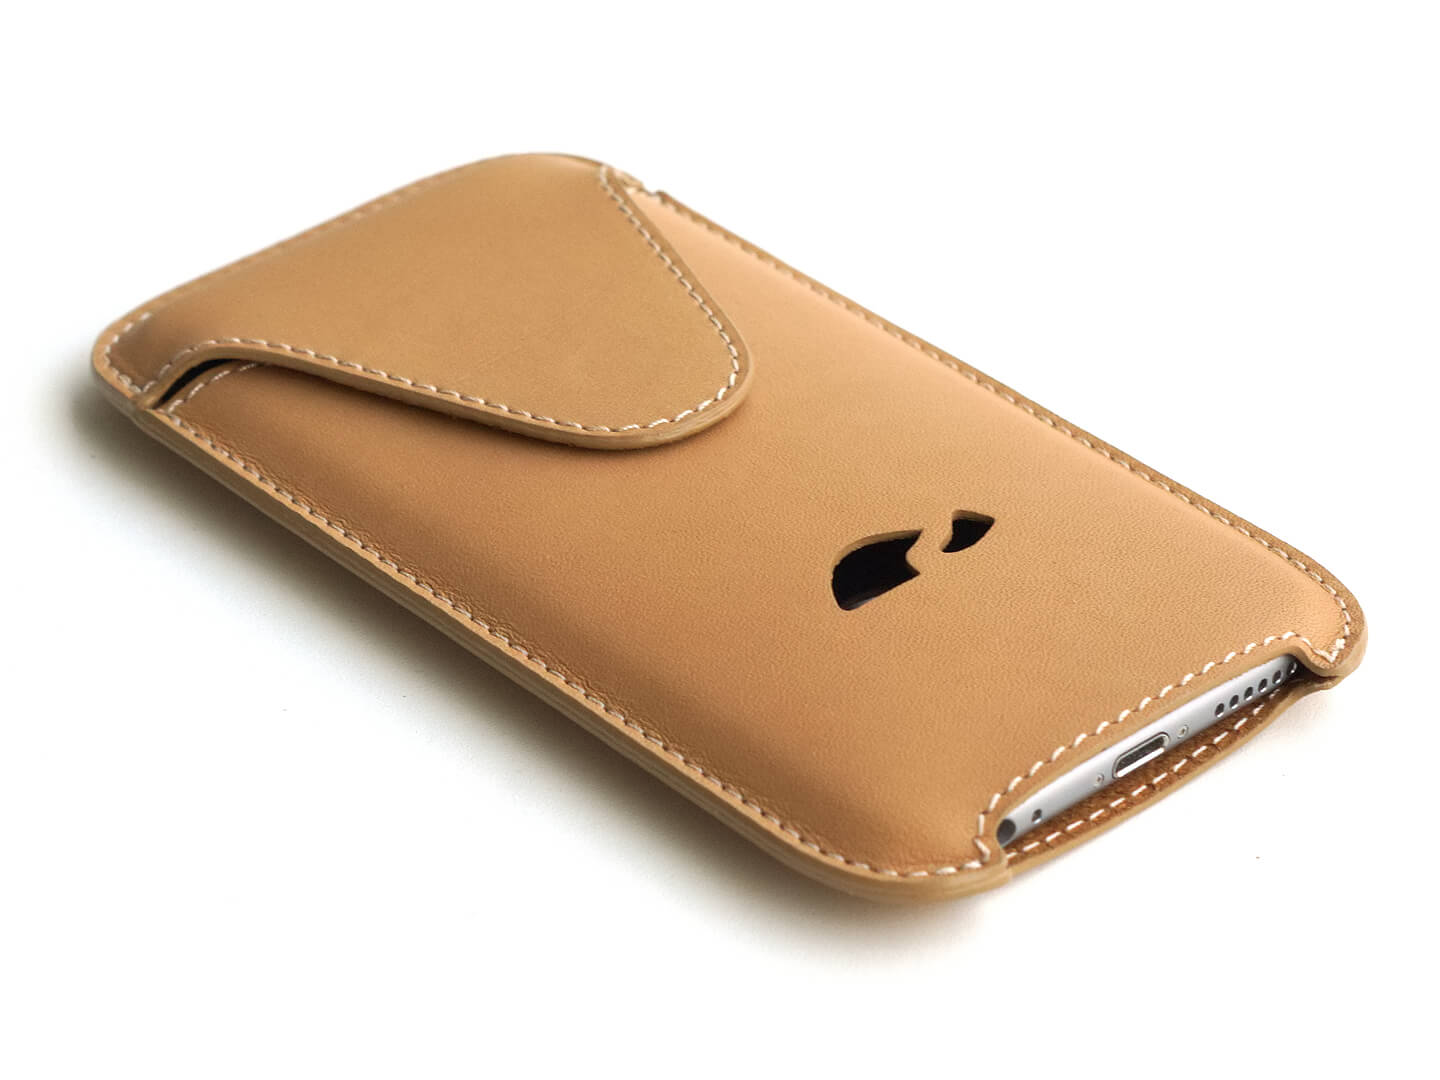 Leather iPhone cover iPhone 7 cover Leather iPhone sleeve